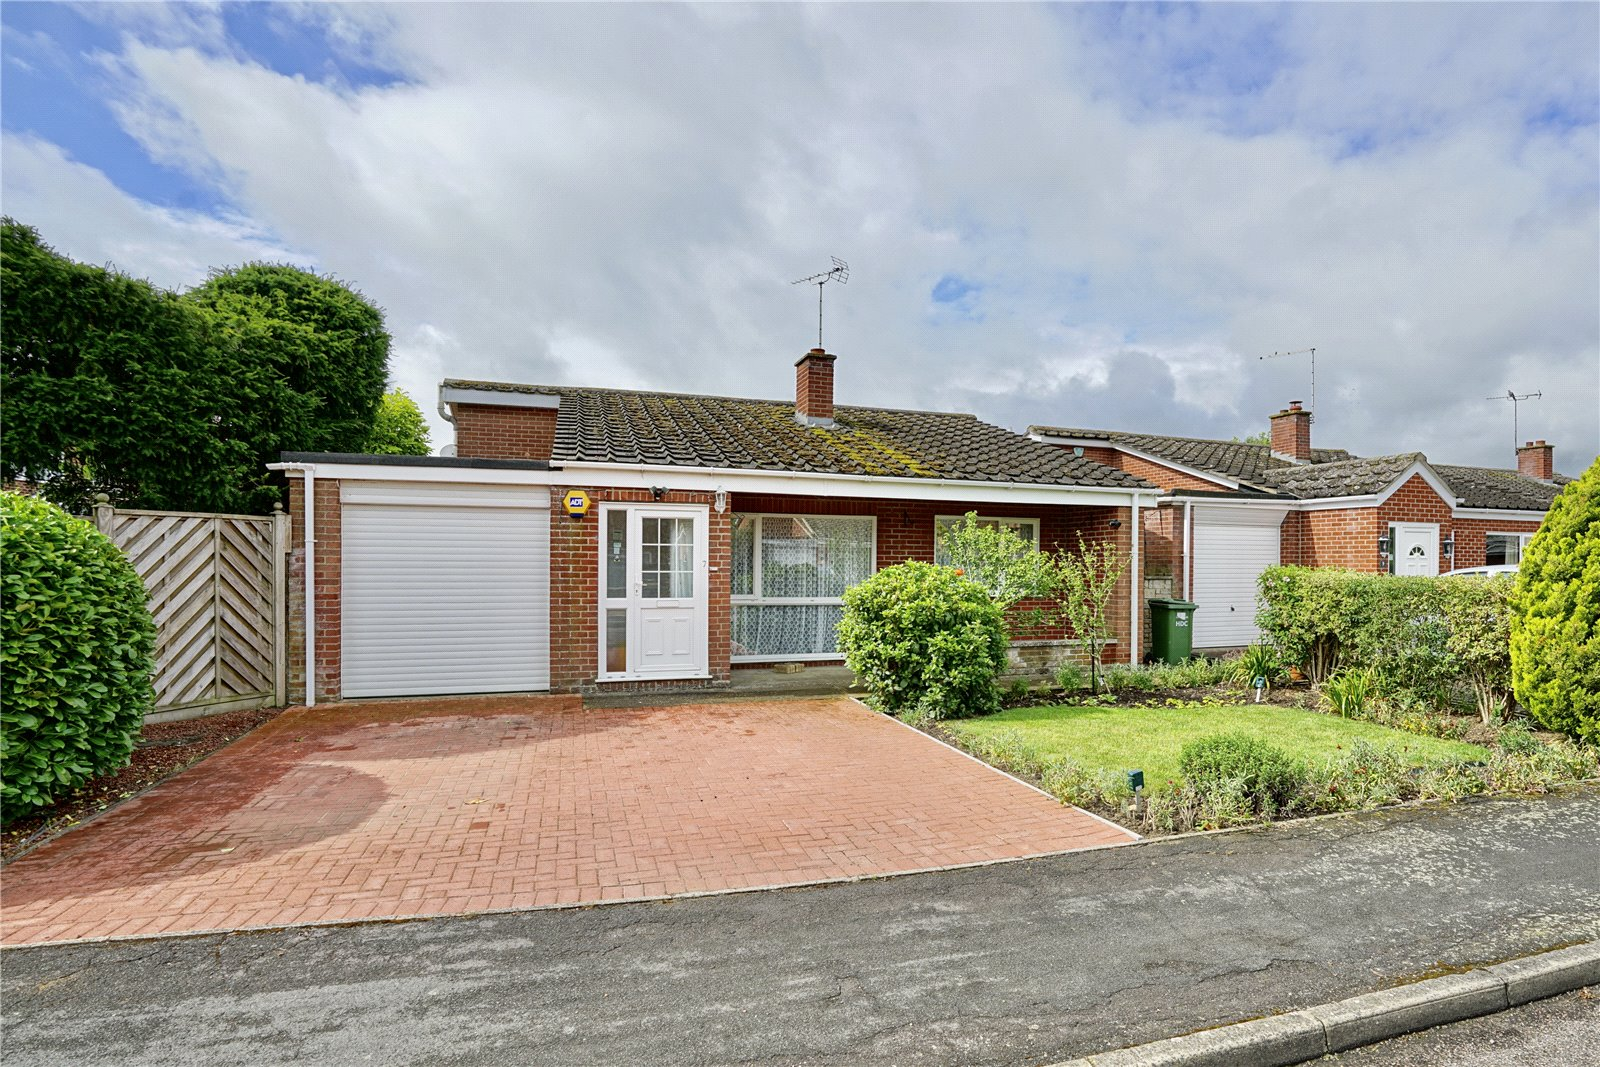 3 bed bungalow for sale in Great Staughton, Manor Close, PE19 5DU  - Property Image 1